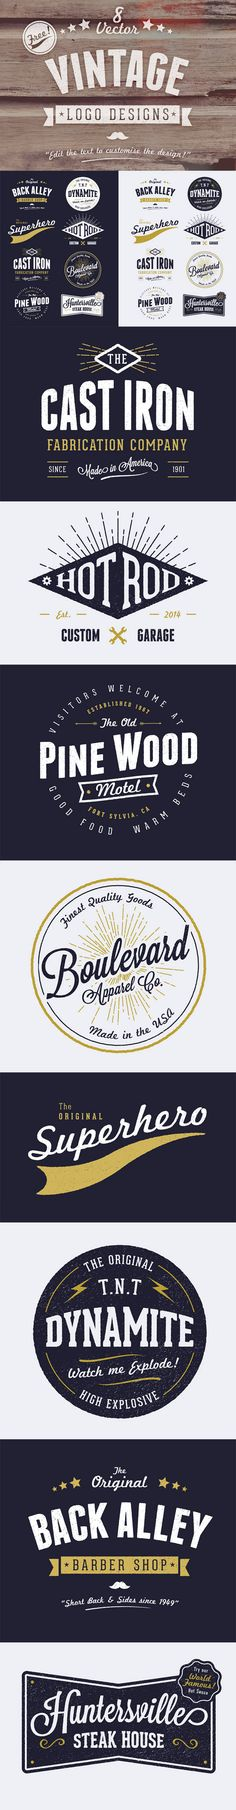 Free Customizable Vector Vintage Logo Designs // via BlogSpoonGraphics